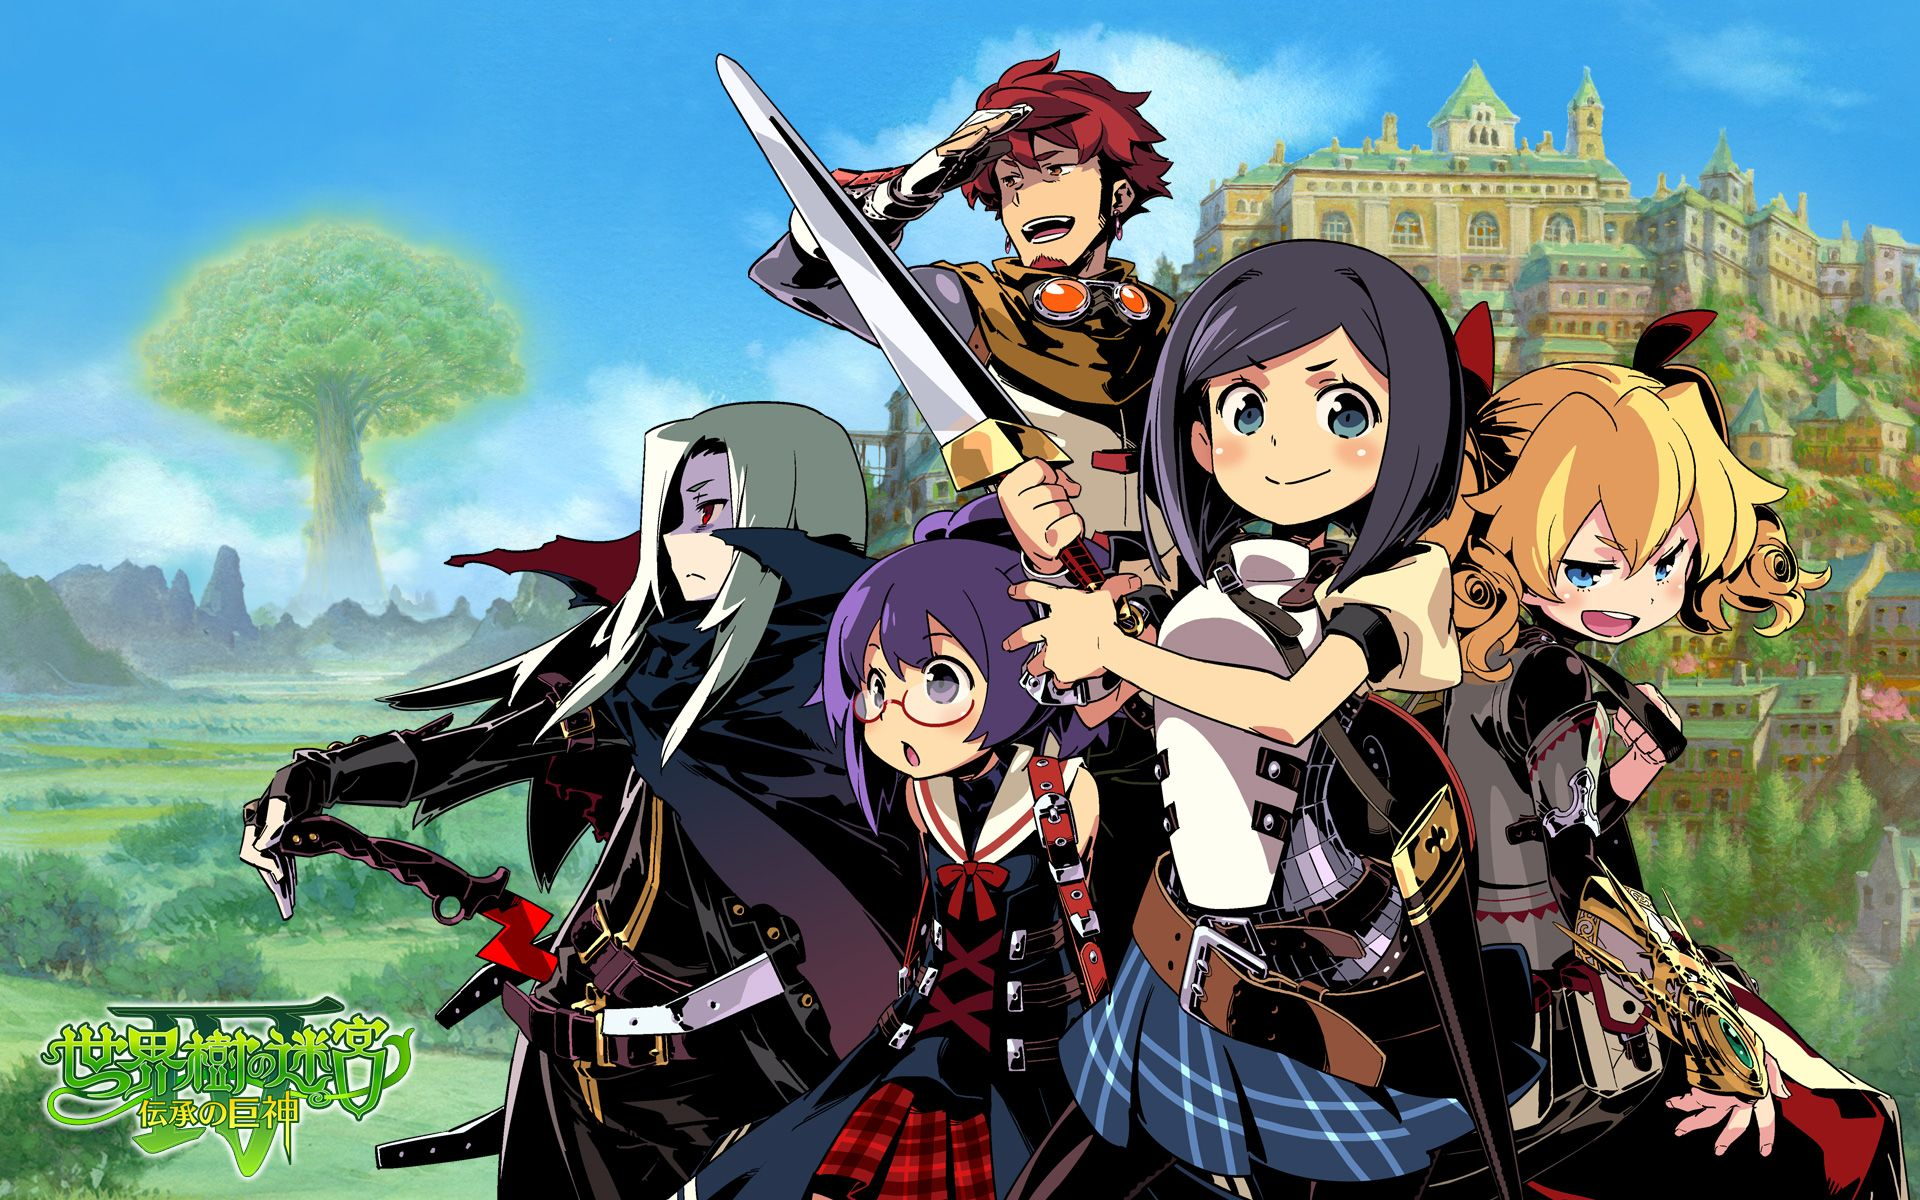 New Trailer Featuring The Arcanist From Etrian Odyssey IV